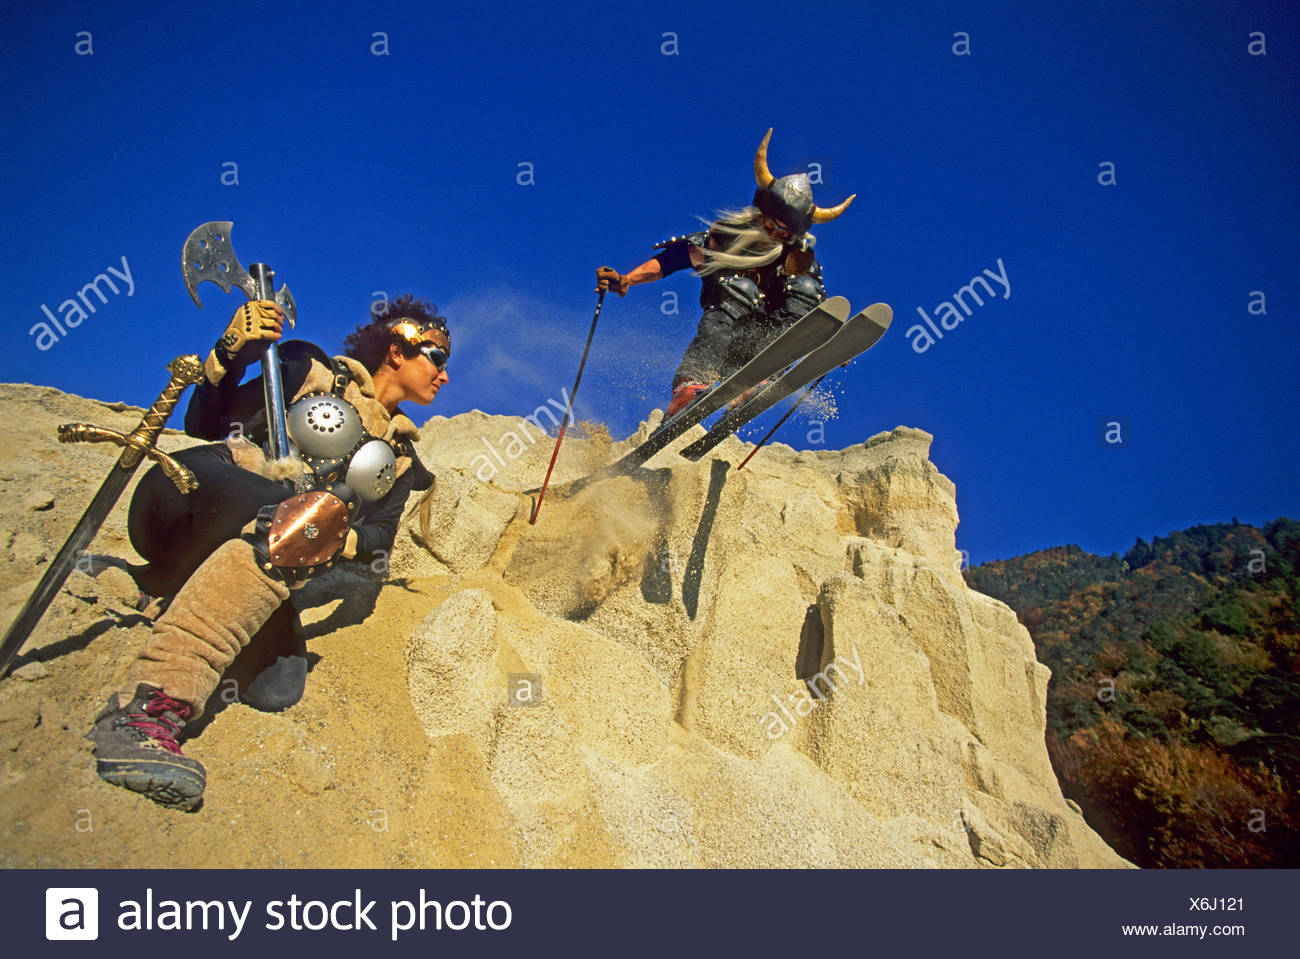 freeride skier disguised as viking going downhill on shingle slope - Stock Image